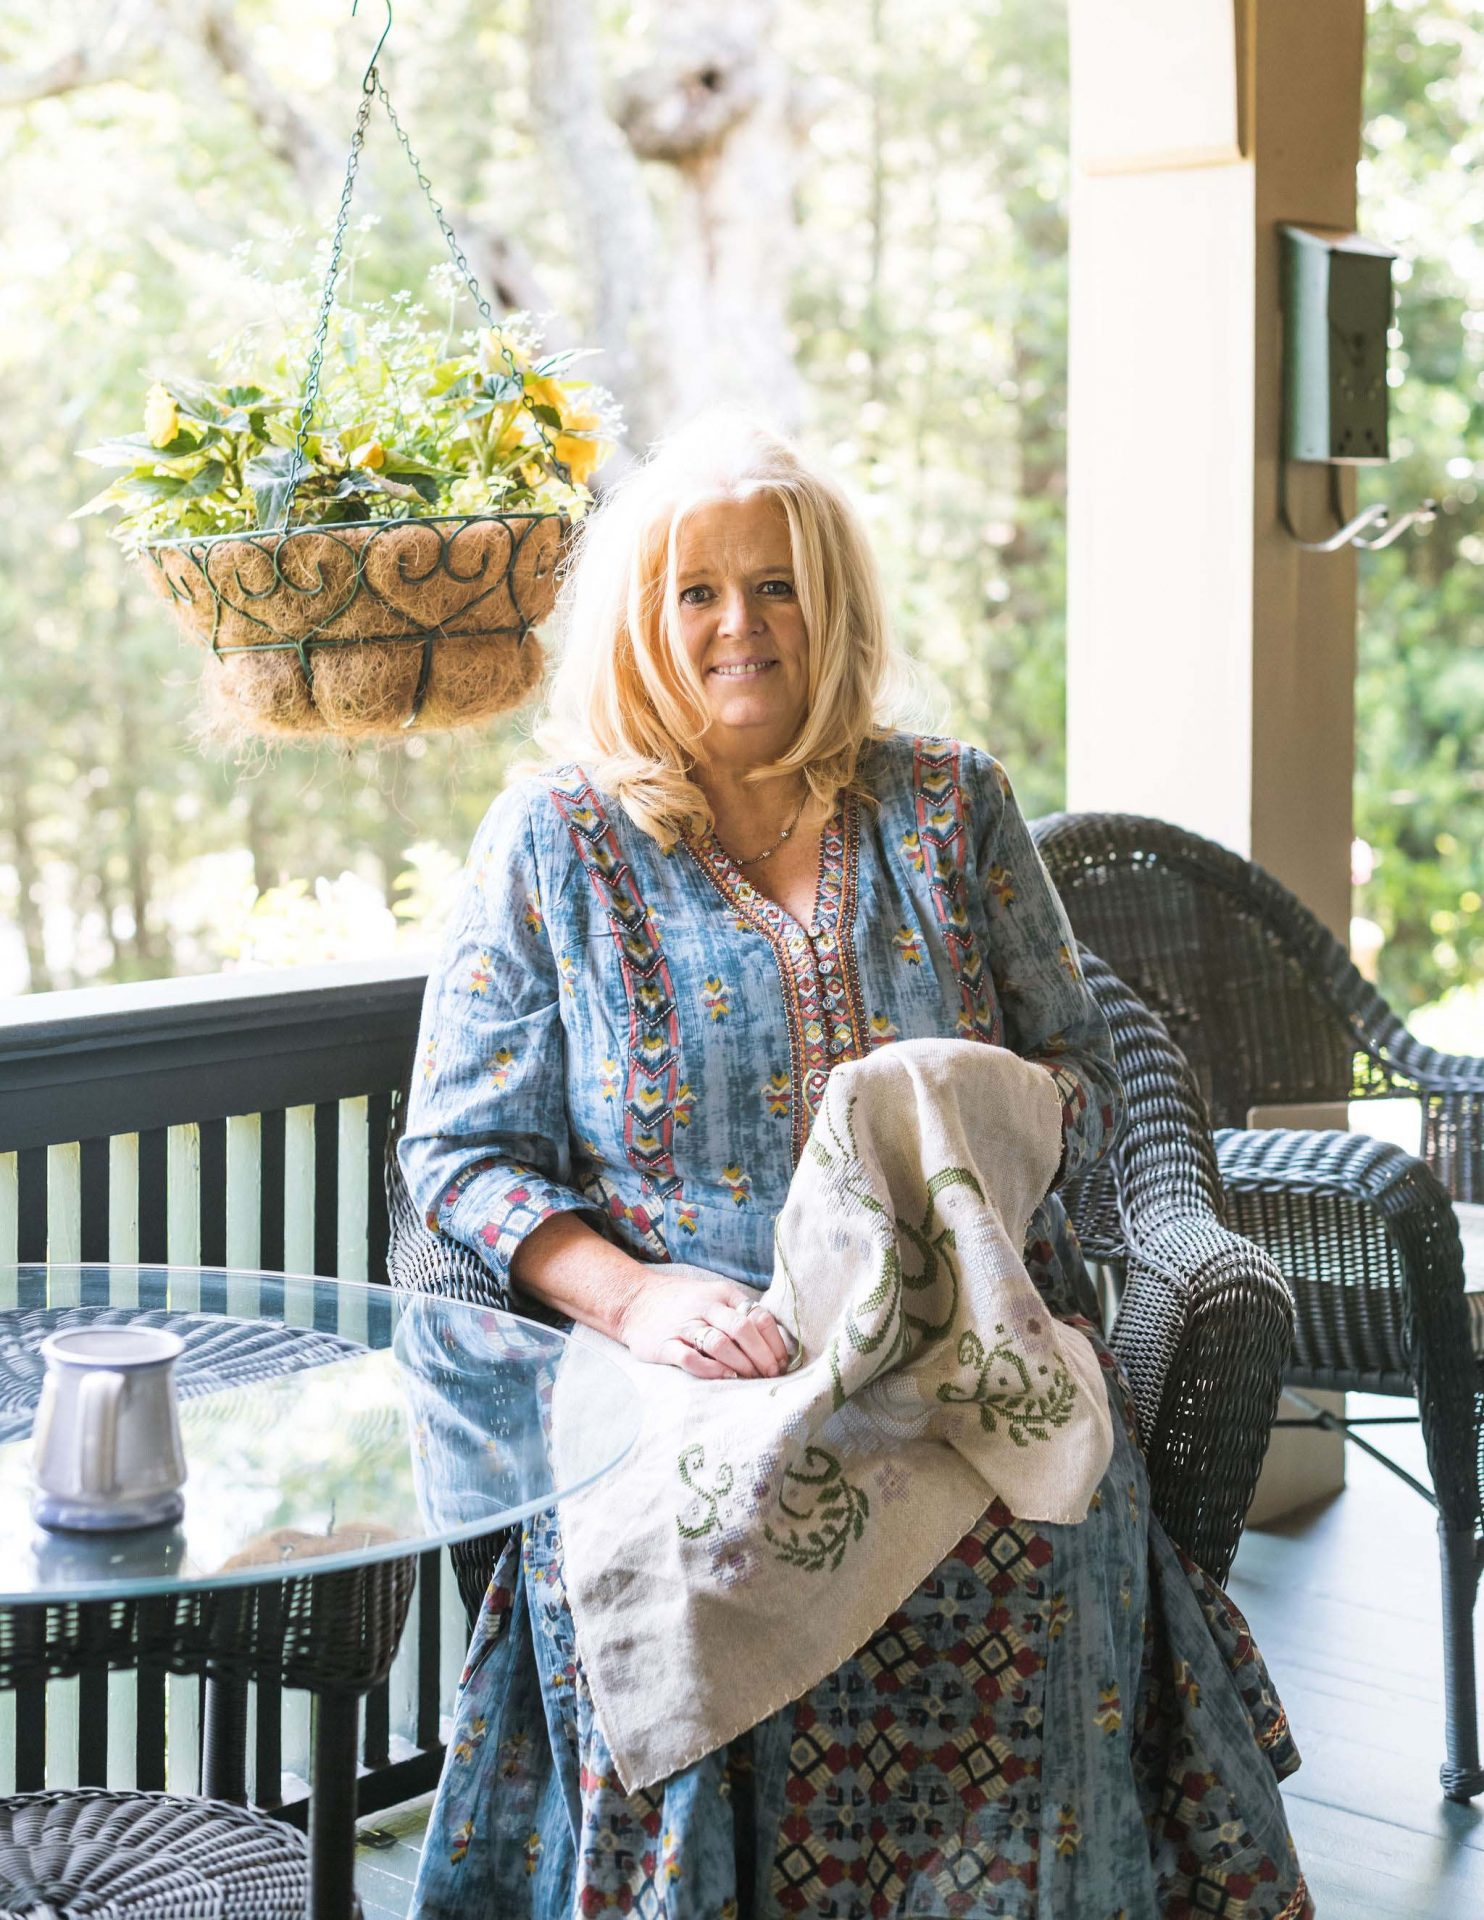 Shawnie embroidering on the porch, in a floral, long, blue dress. She is looking straight at the camera and smiling.